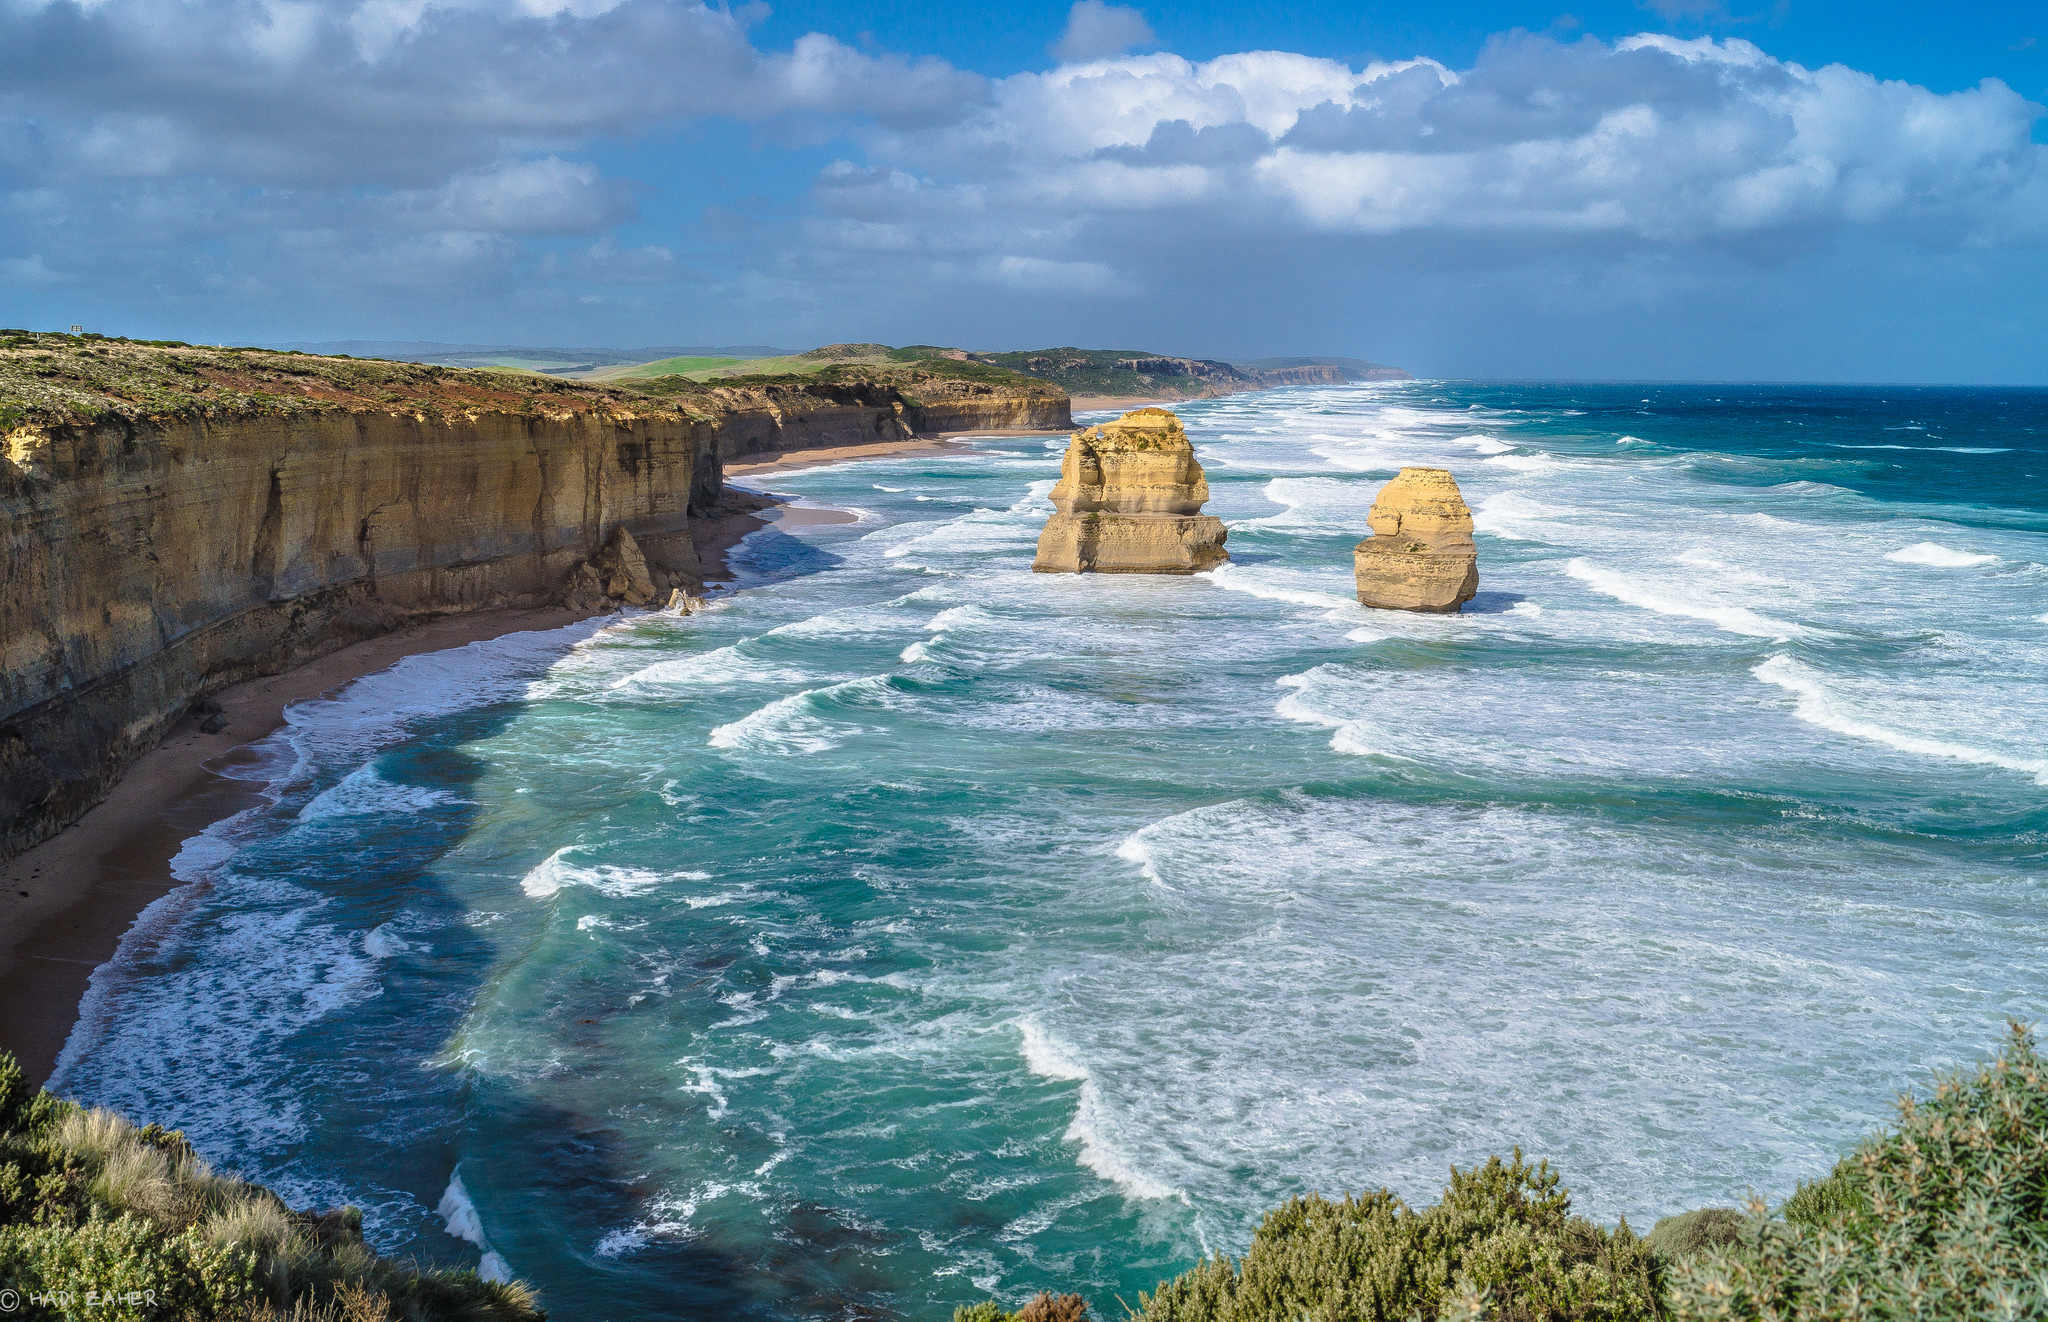 Earth and Water | The 12 Apostles | Port Campbell National Park